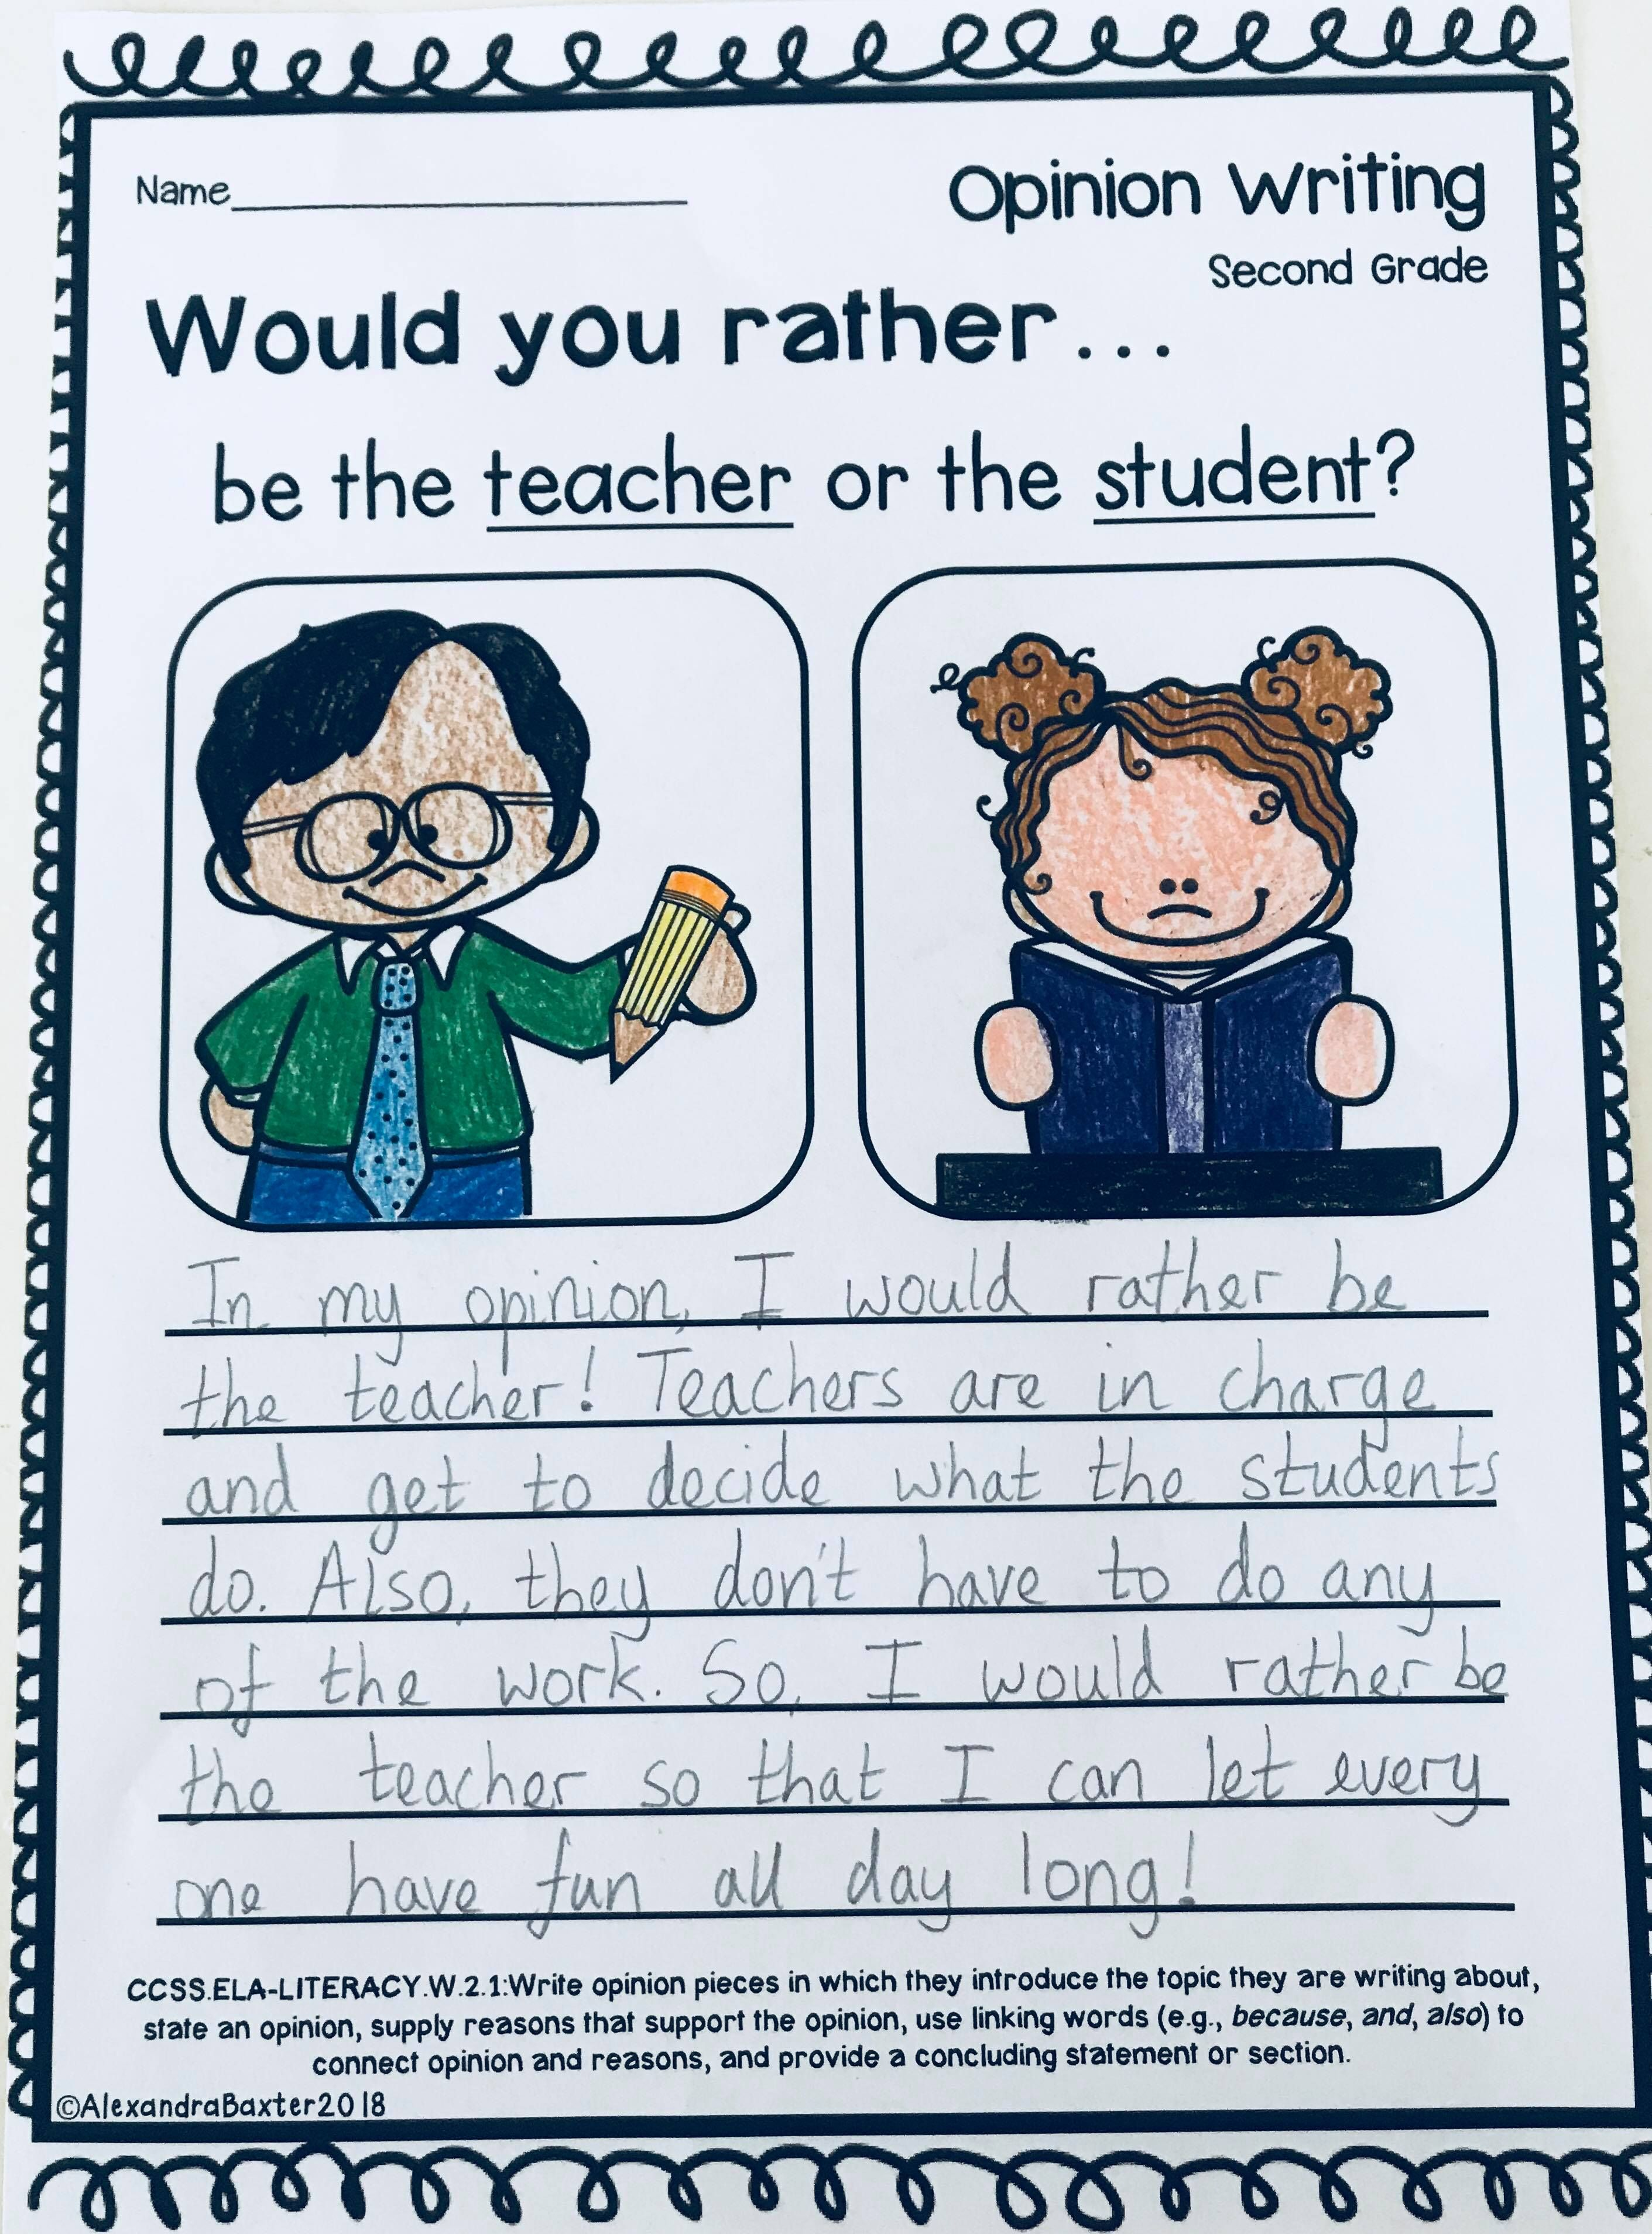 Second Grade Opinion Writing Prompts Worksheets